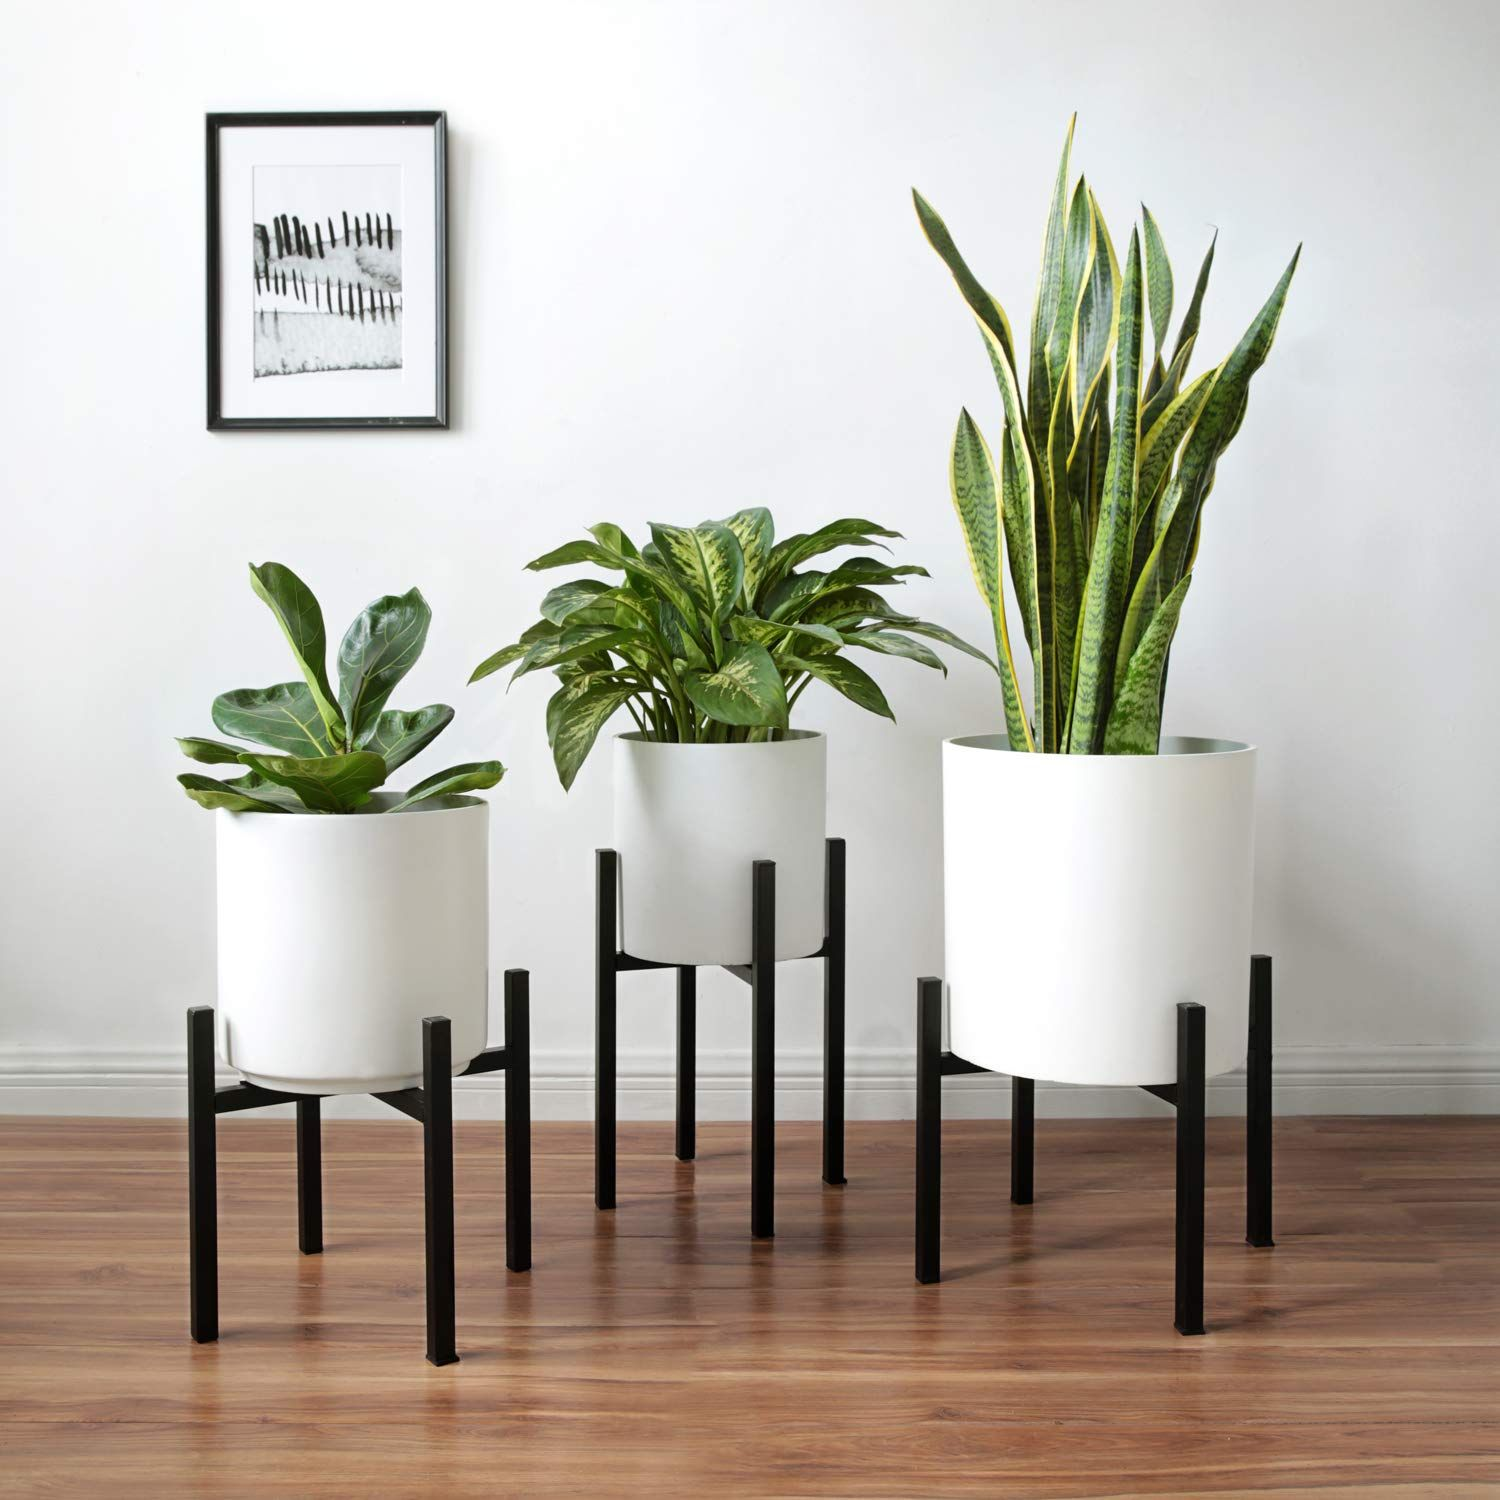 Amazon Com Mkono Plant Stand Mid Century Modern Tall Flower Pot Stands Indoor Outdoor Metal Potted Plant Holder Plant Plant Holders Tall Flowers Flower Pots